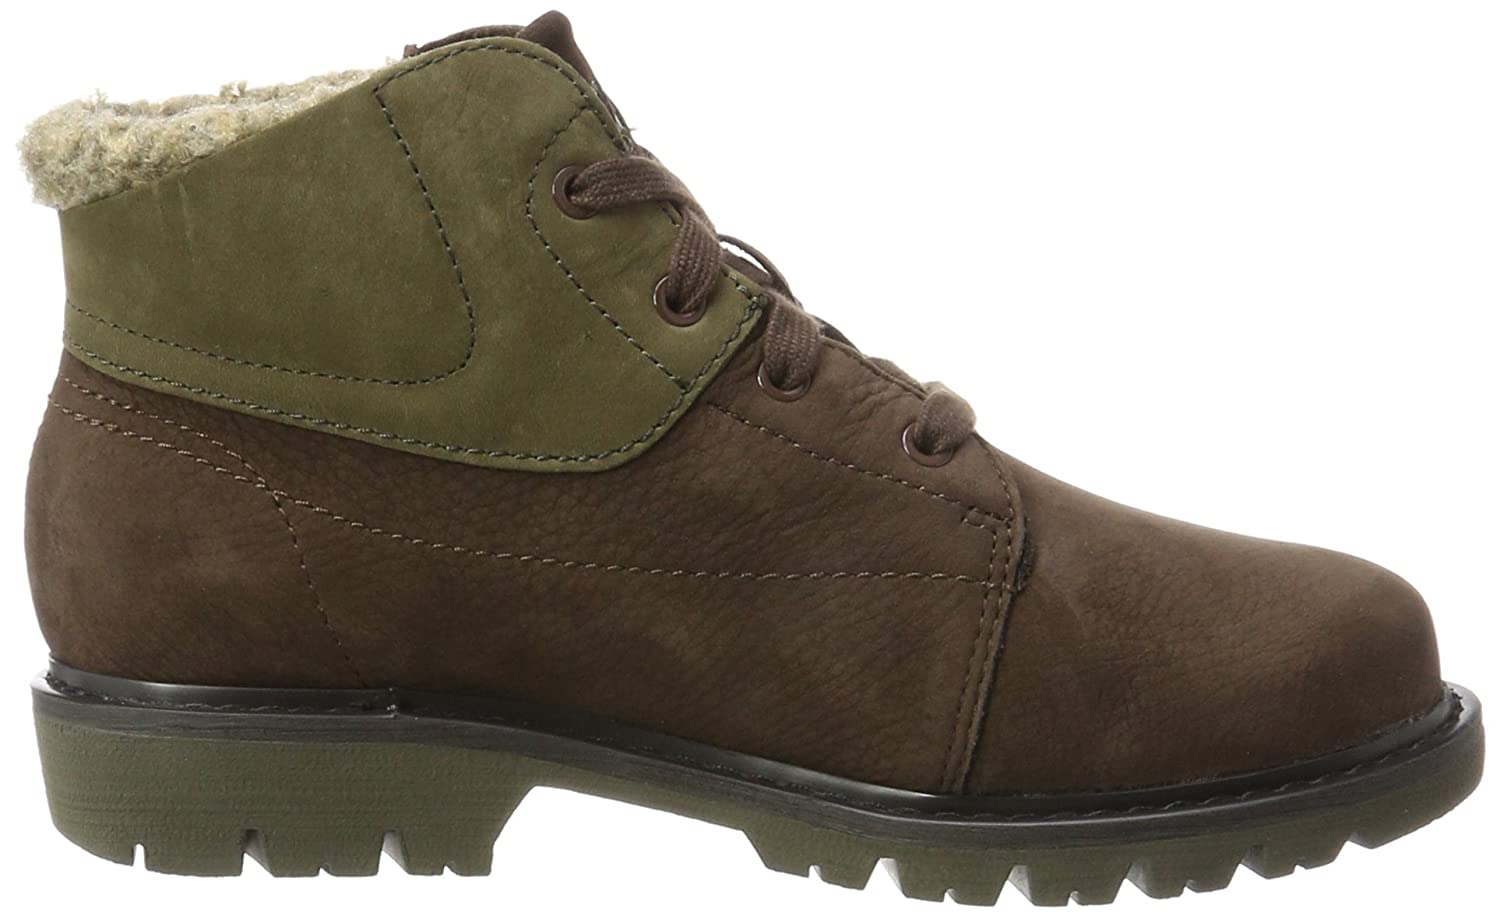 Caterpillar Fret Fur WP, Botas para Mujer: Amazon.es: Zapatos y complementos